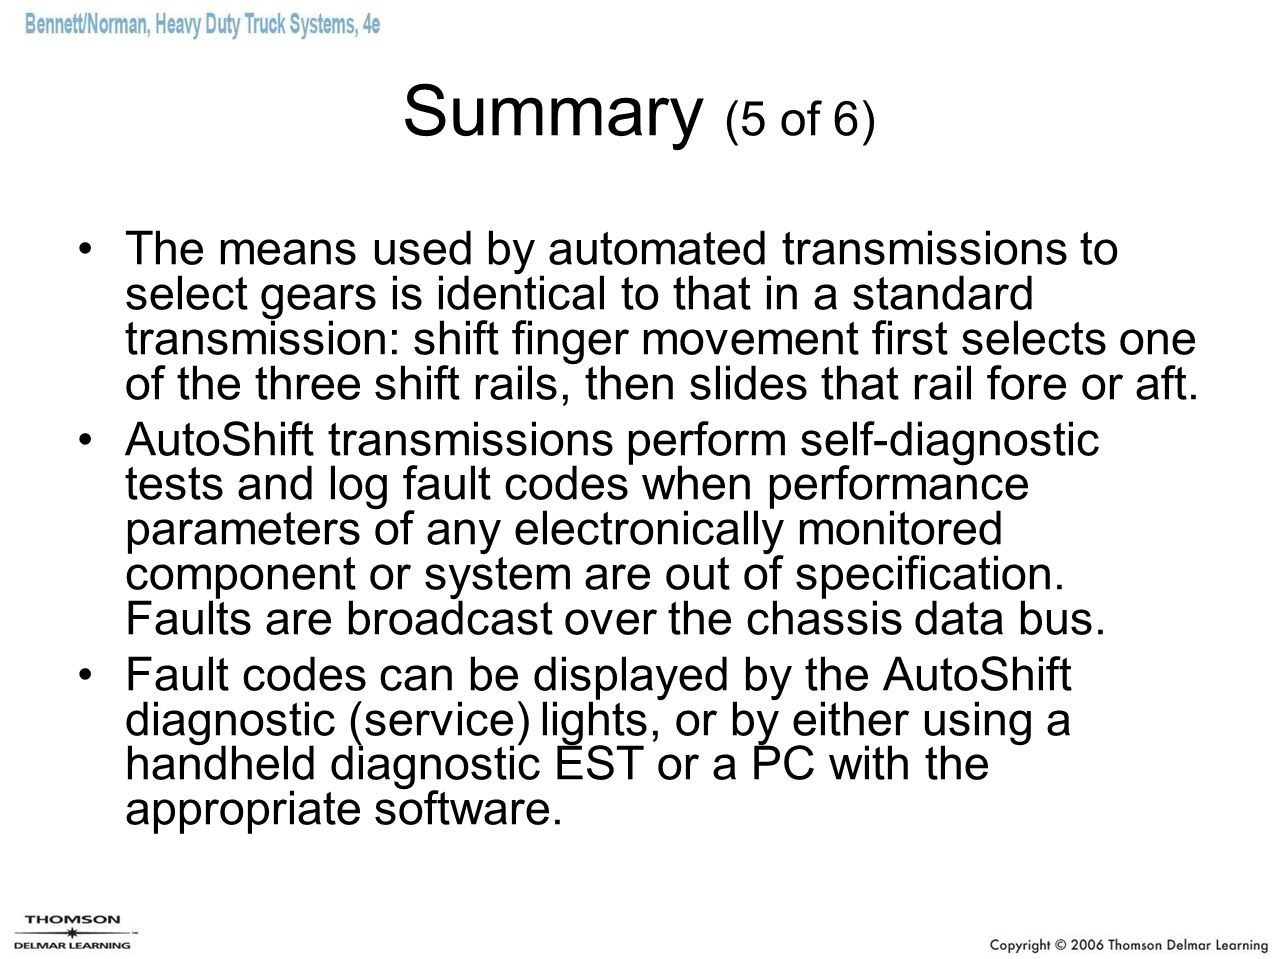 Summary (5 of 6) The means used by automated transmissions to select gears is identical to that in a standard transmission: shift finger movement firs